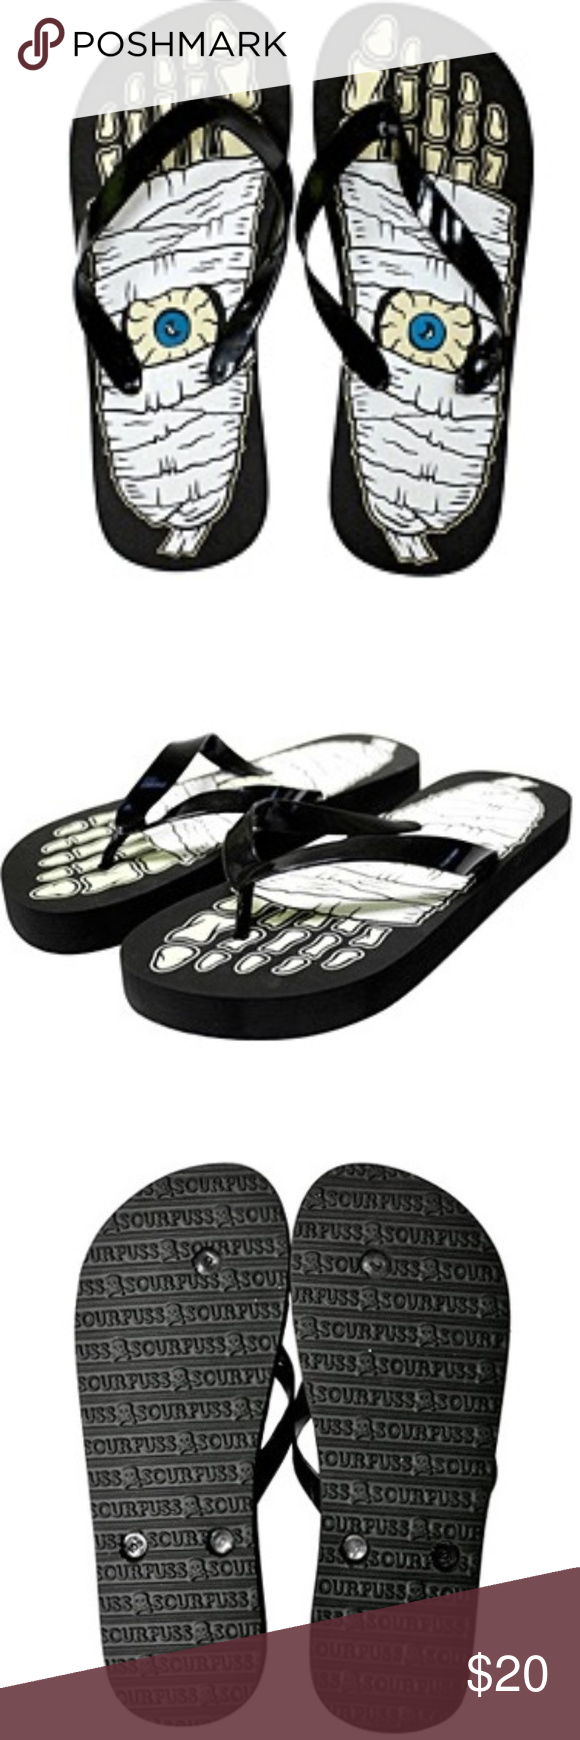 aacecefda5b75 Sourpuss Mummy Monster Eyeball Flip Flops Shoes Brand New SOLD OUT IN  STORES NO LONGER MADE